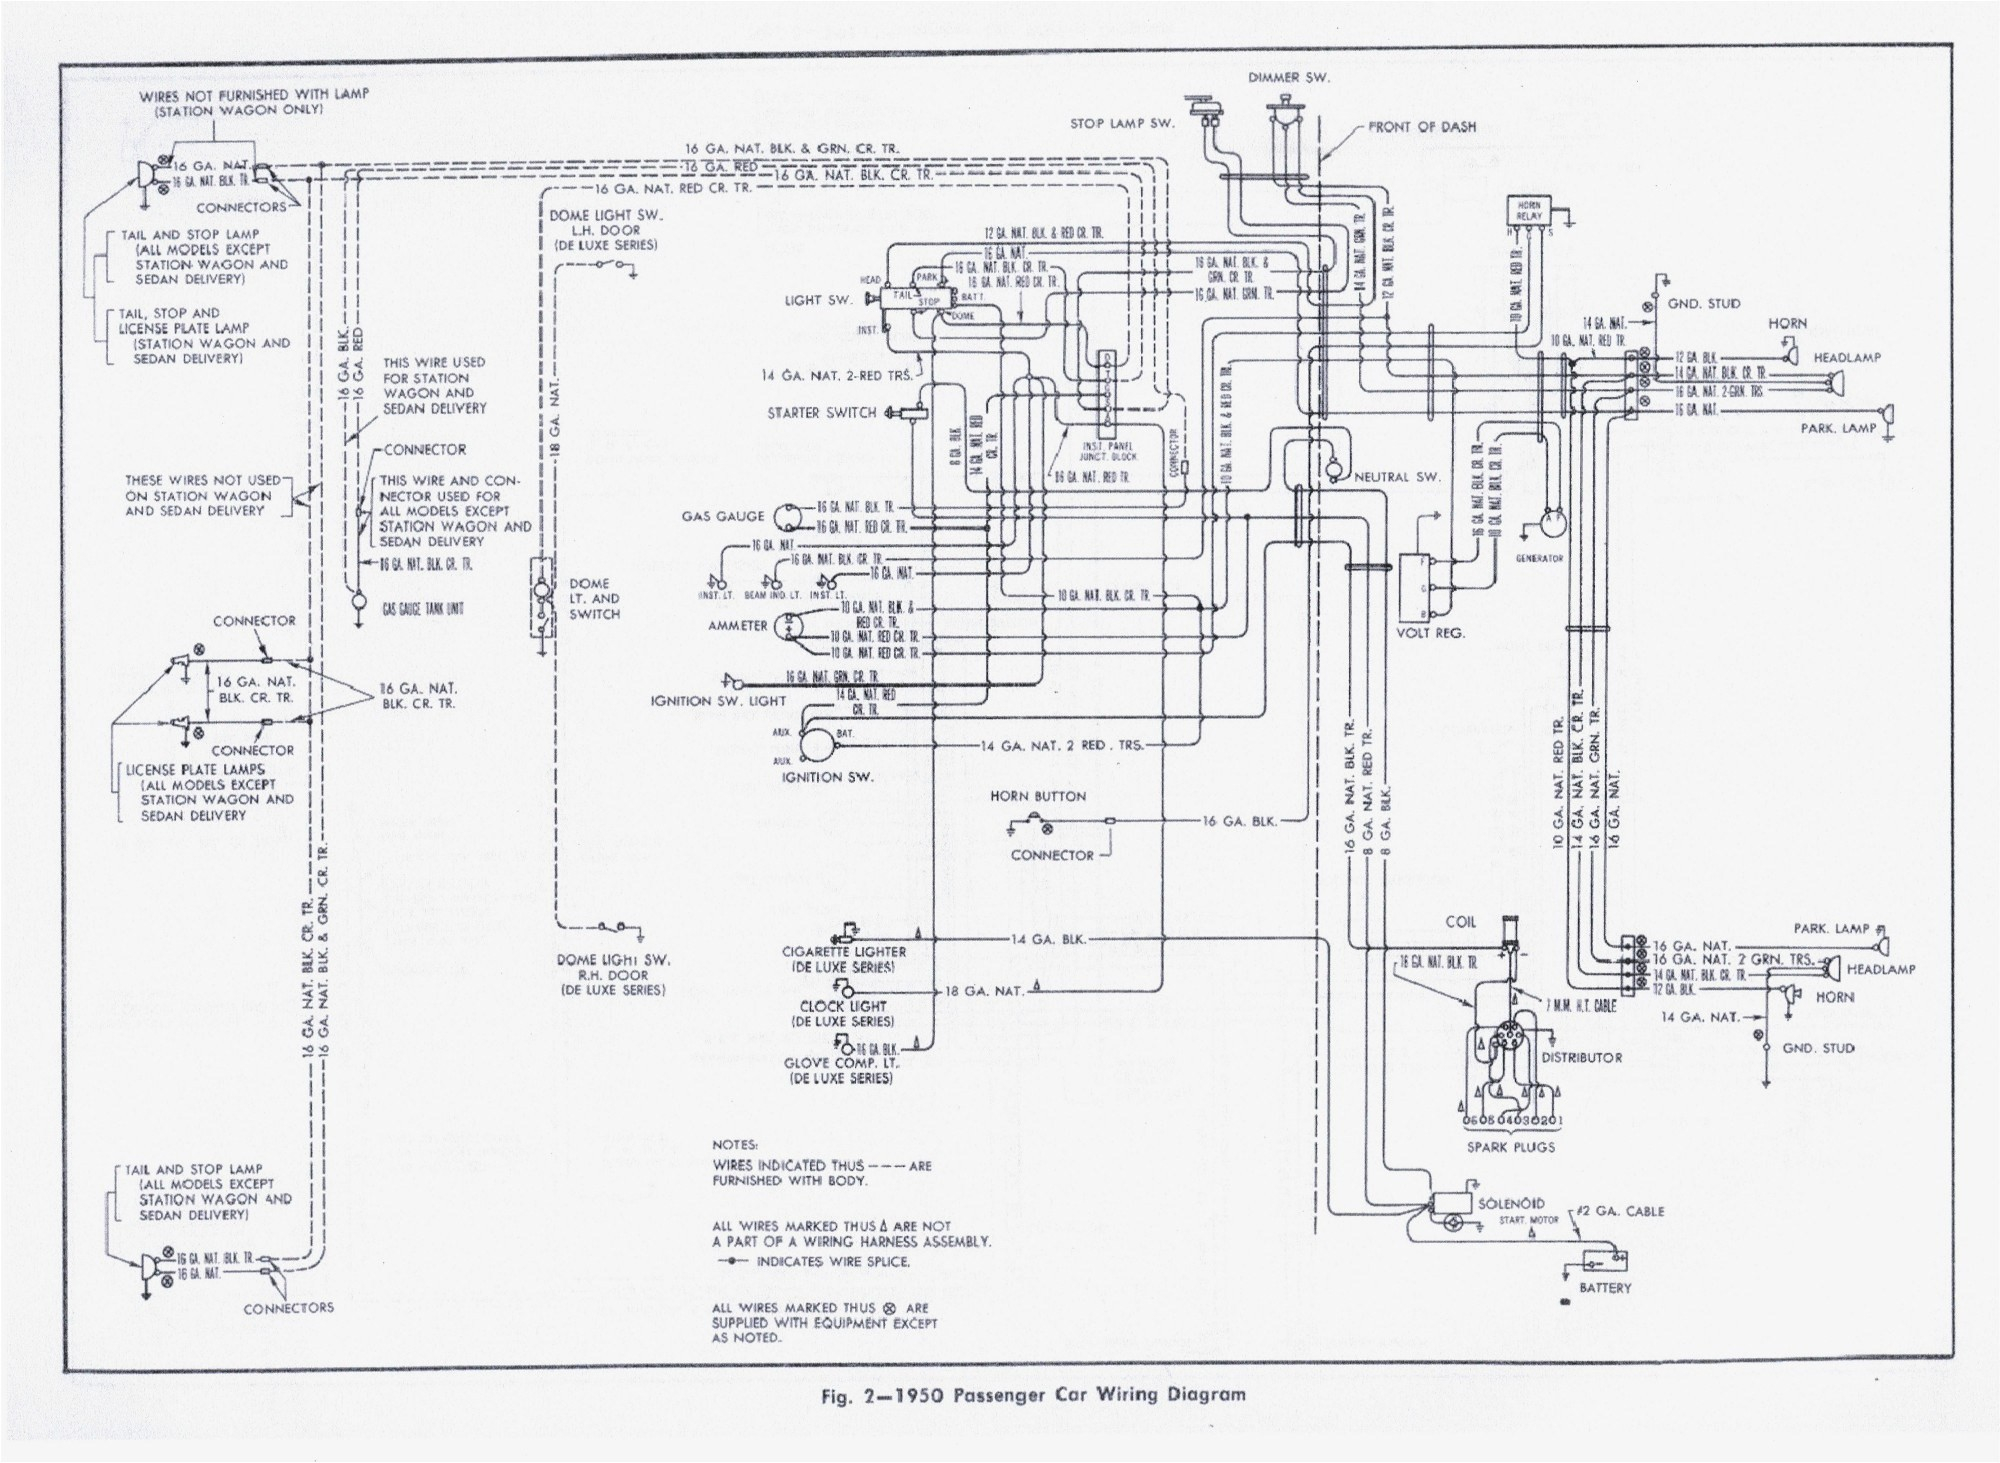 DIAGRAM] Southern Pride Smoker Wiring Diagram FULL Version ... on transformer diagrams, gmc fuse box diagrams, electrical diagrams, troubleshooting diagrams, engine diagrams, battery diagrams, hvac diagrams, led circuit diagrams, sincgars radio configurations diagrams, internet of things diagrams, pinout diagrams, friendship bracelet diagrams, honda motorcycle repair diagrams, lighting diagrams, series and parallel circuits diagrams, switch diagrams, electronic circuit diagrams, smart car diagrams, motor diagrams,